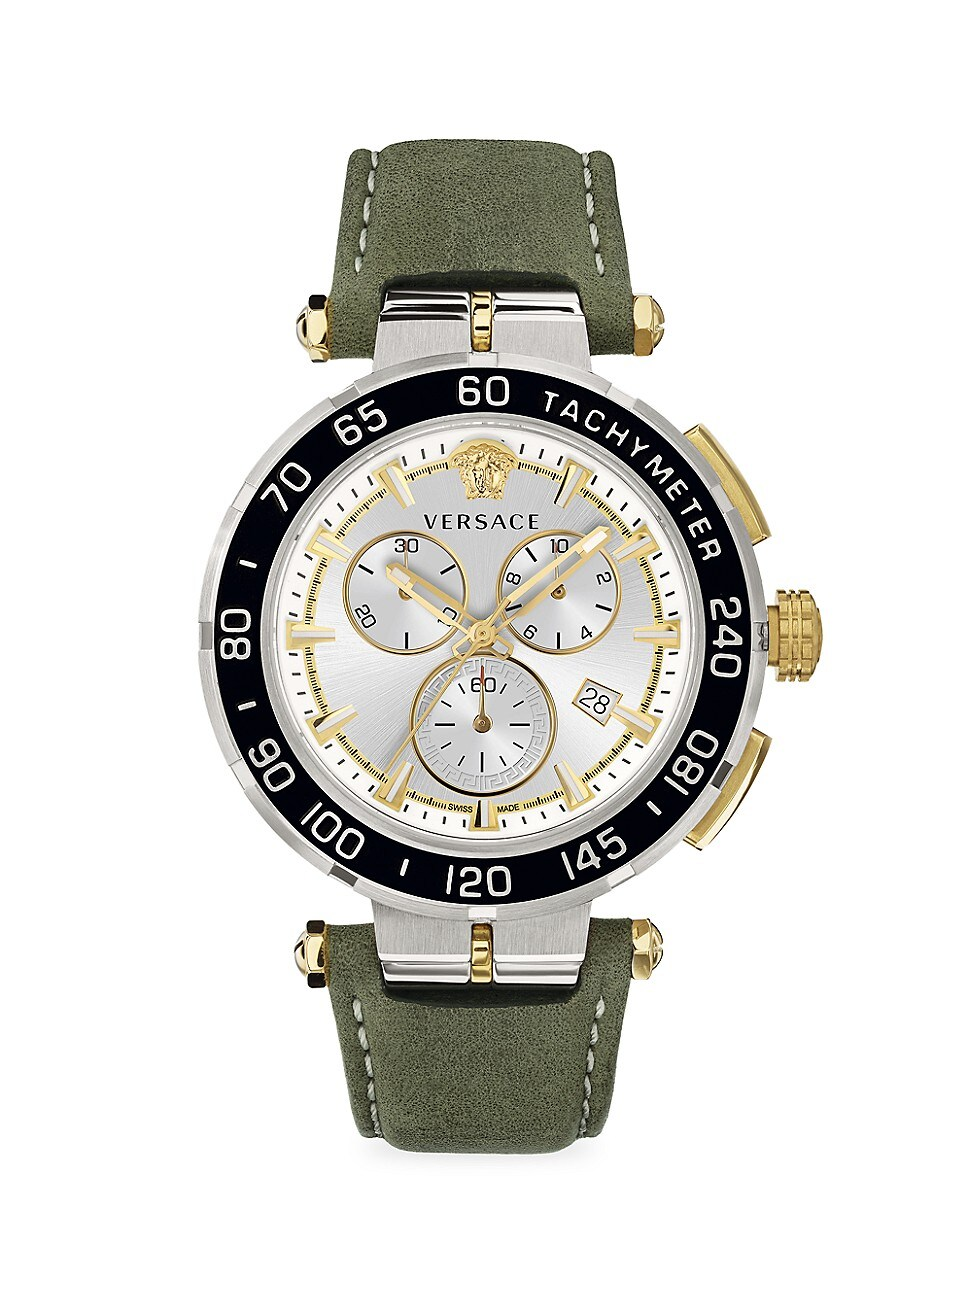 VERSACE GRECA CHRONO STAINLESS STEEL & SILVER GUILLOCHÉ WATCH